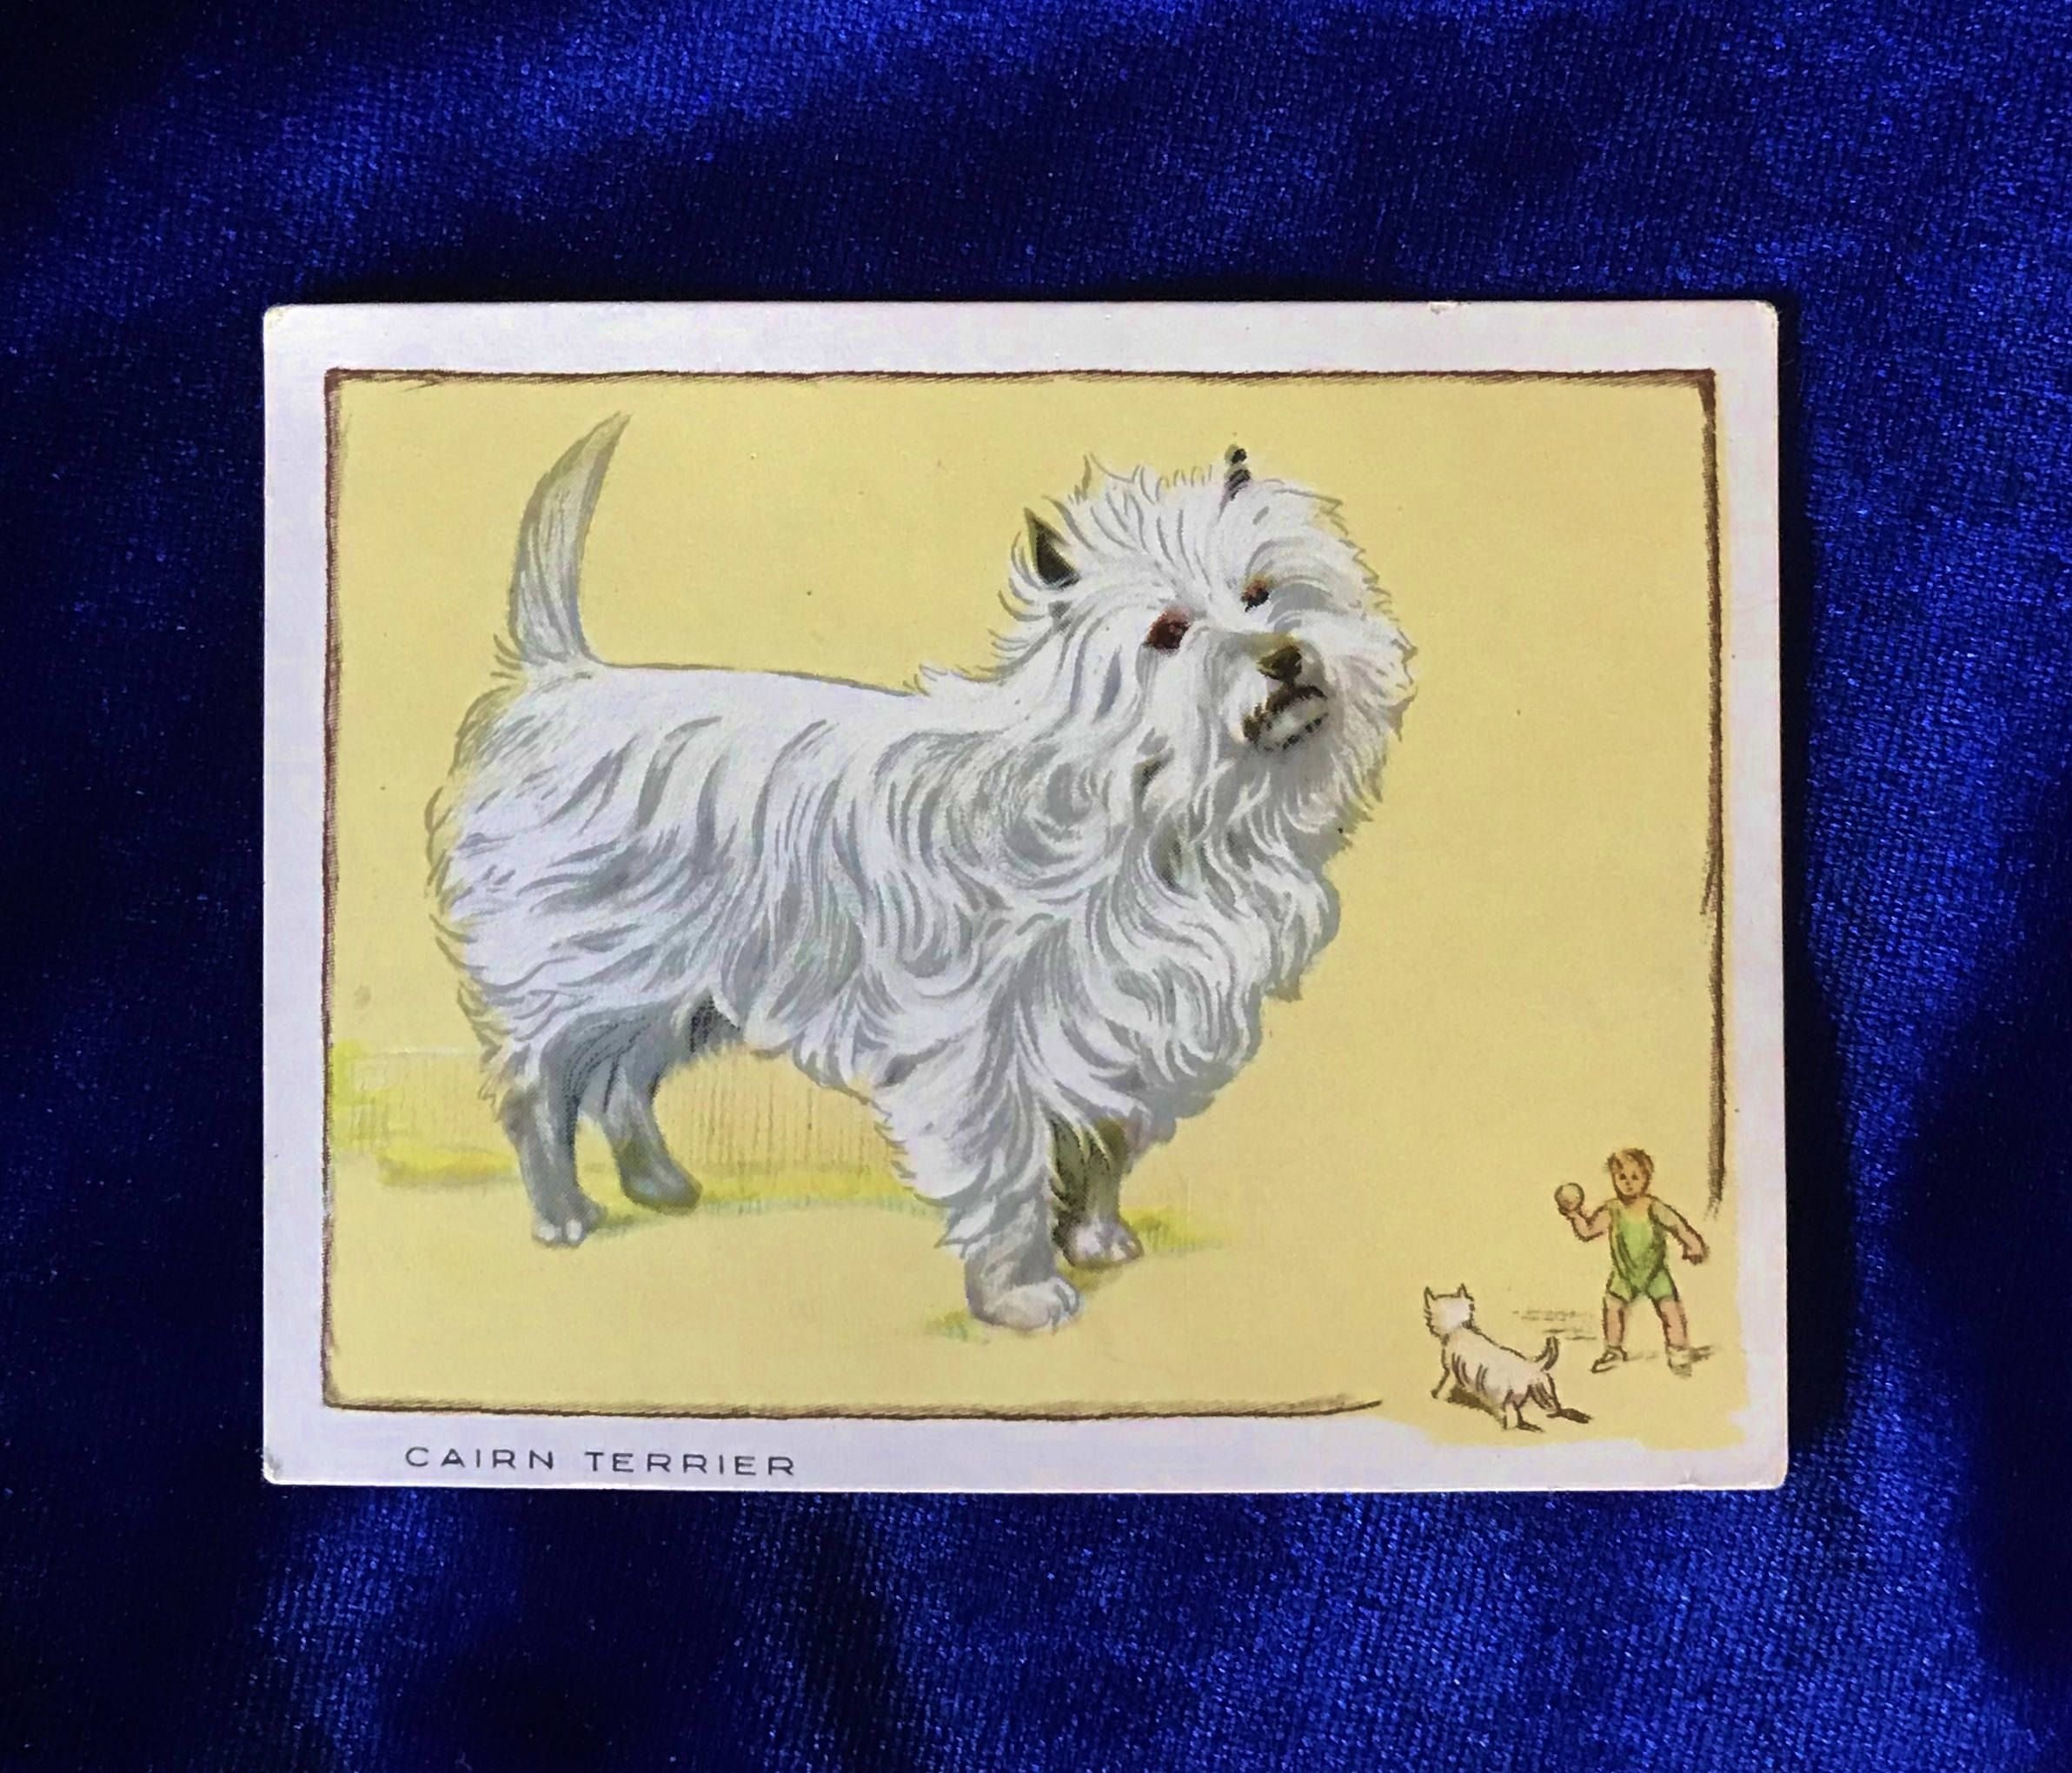 1934 Cairn Terrier Gallaher S De Lux Cigarettes Card For Sale At